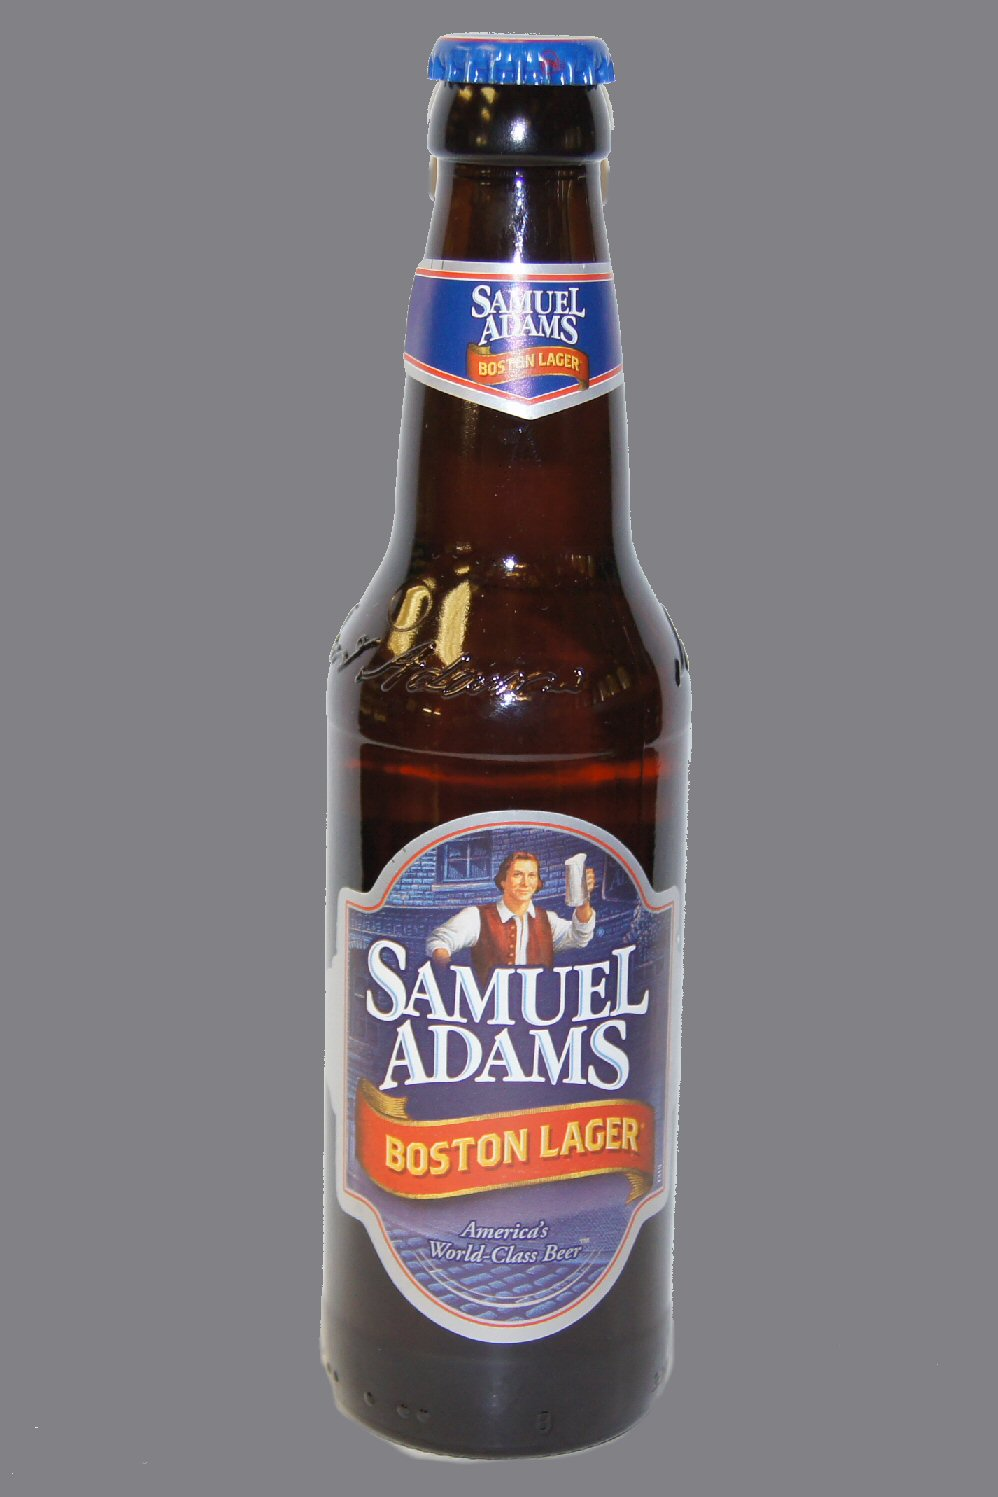 SAMULE ADAMS-Boston lager.jpg